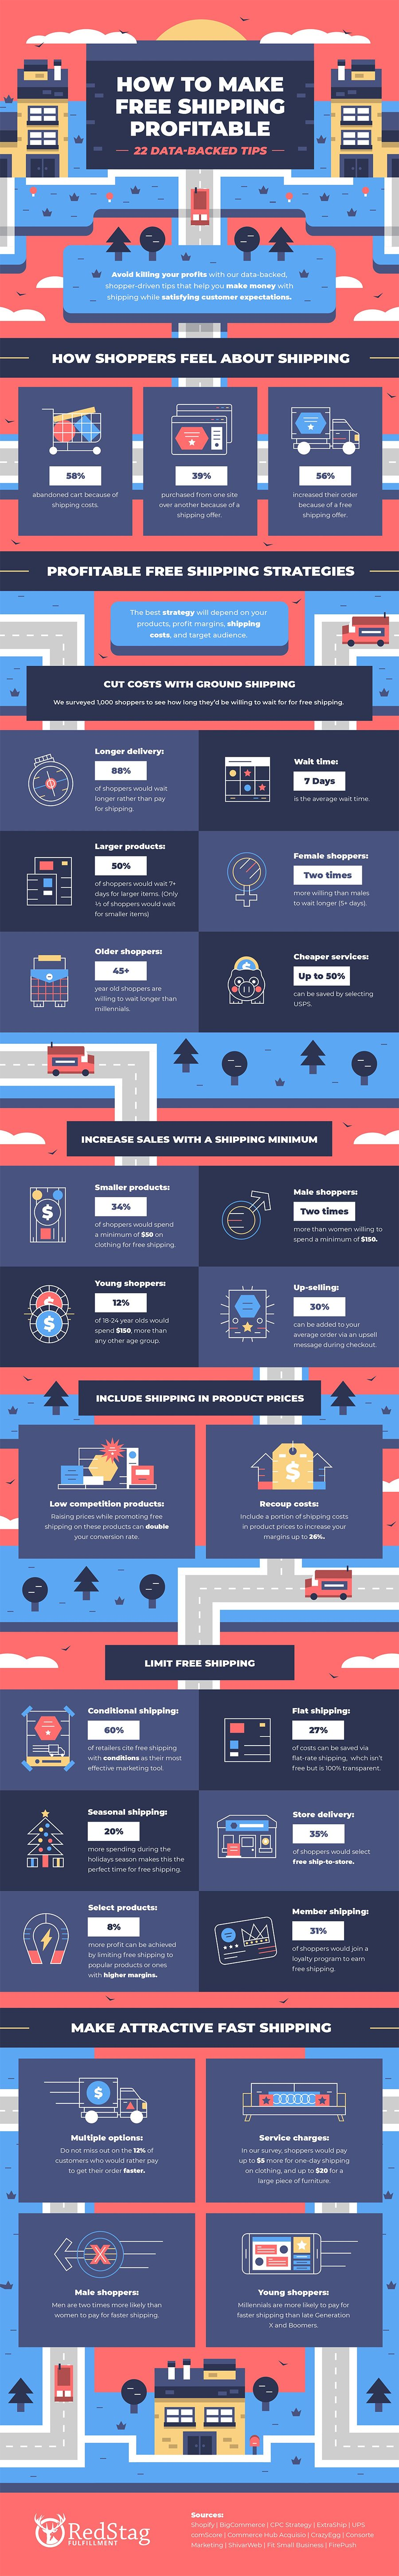 22 Tips to Make Free Shipping Profitable on Your eCommerce Website [Infographic]